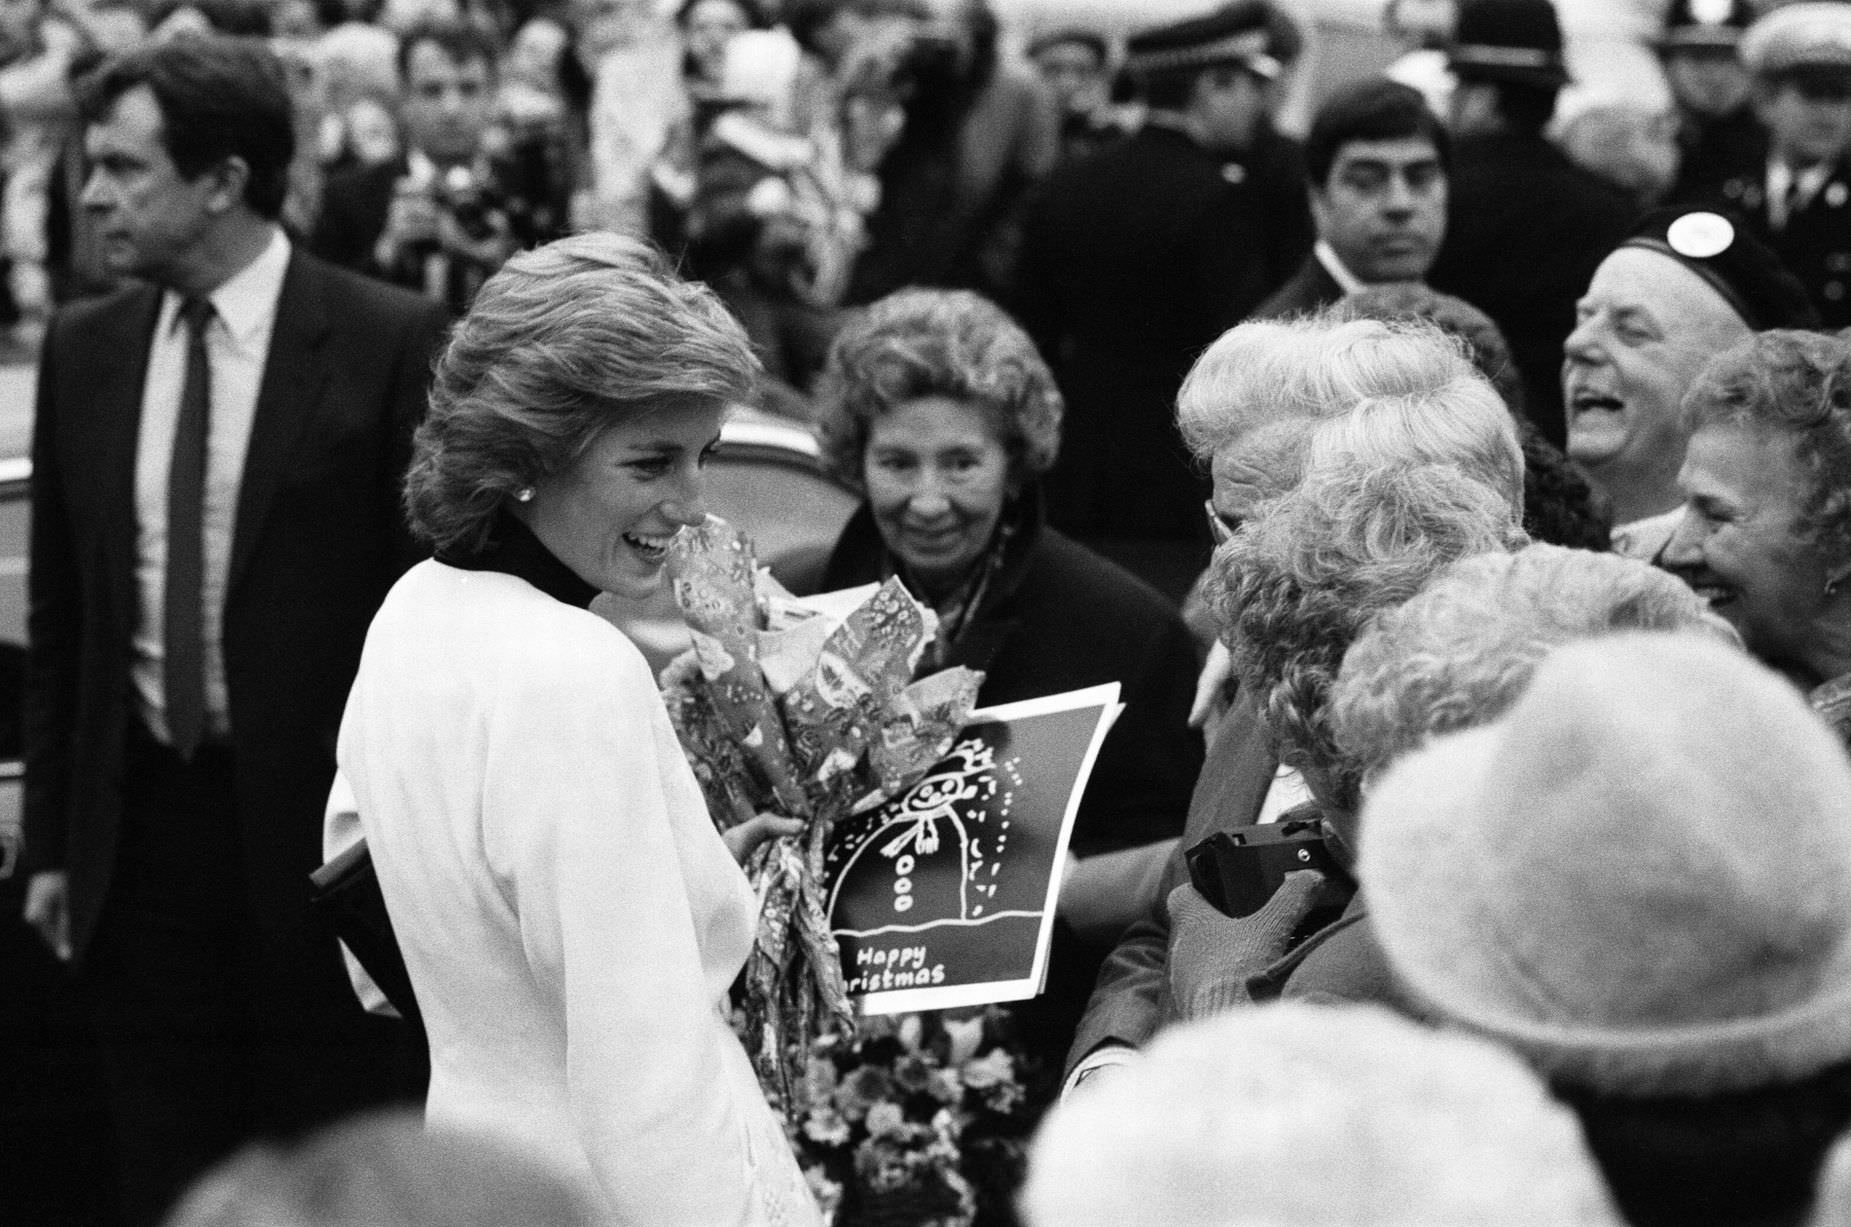 Princess Diana arrives to officially open Acorns Children's Hospice, 14th December 1988.